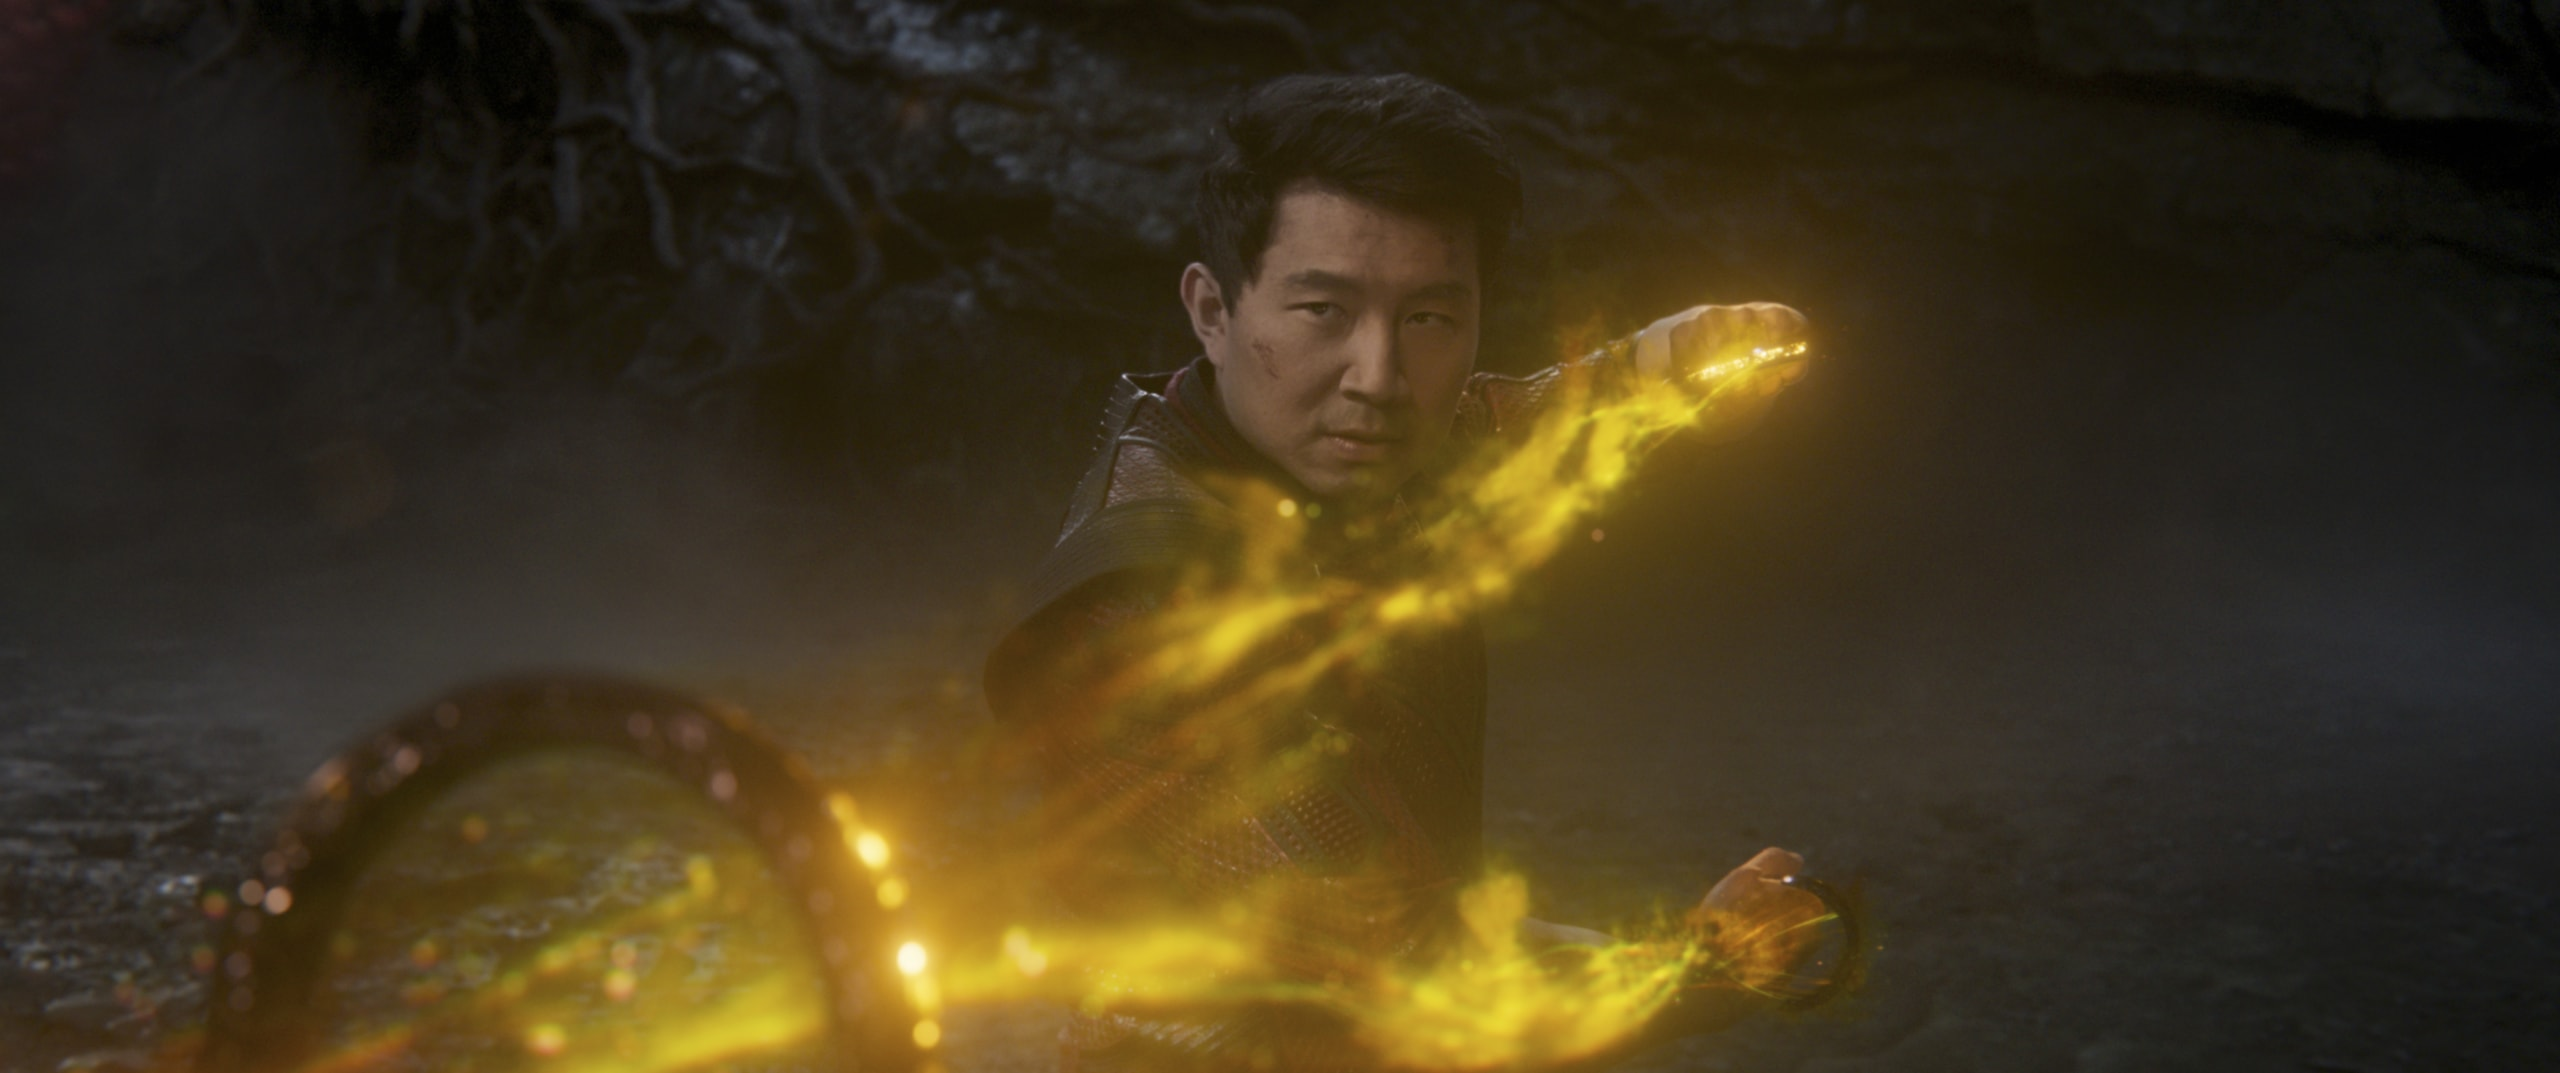 SHANG-CHI AND THE LEGEND OF THE TEN RINGS Breakdown